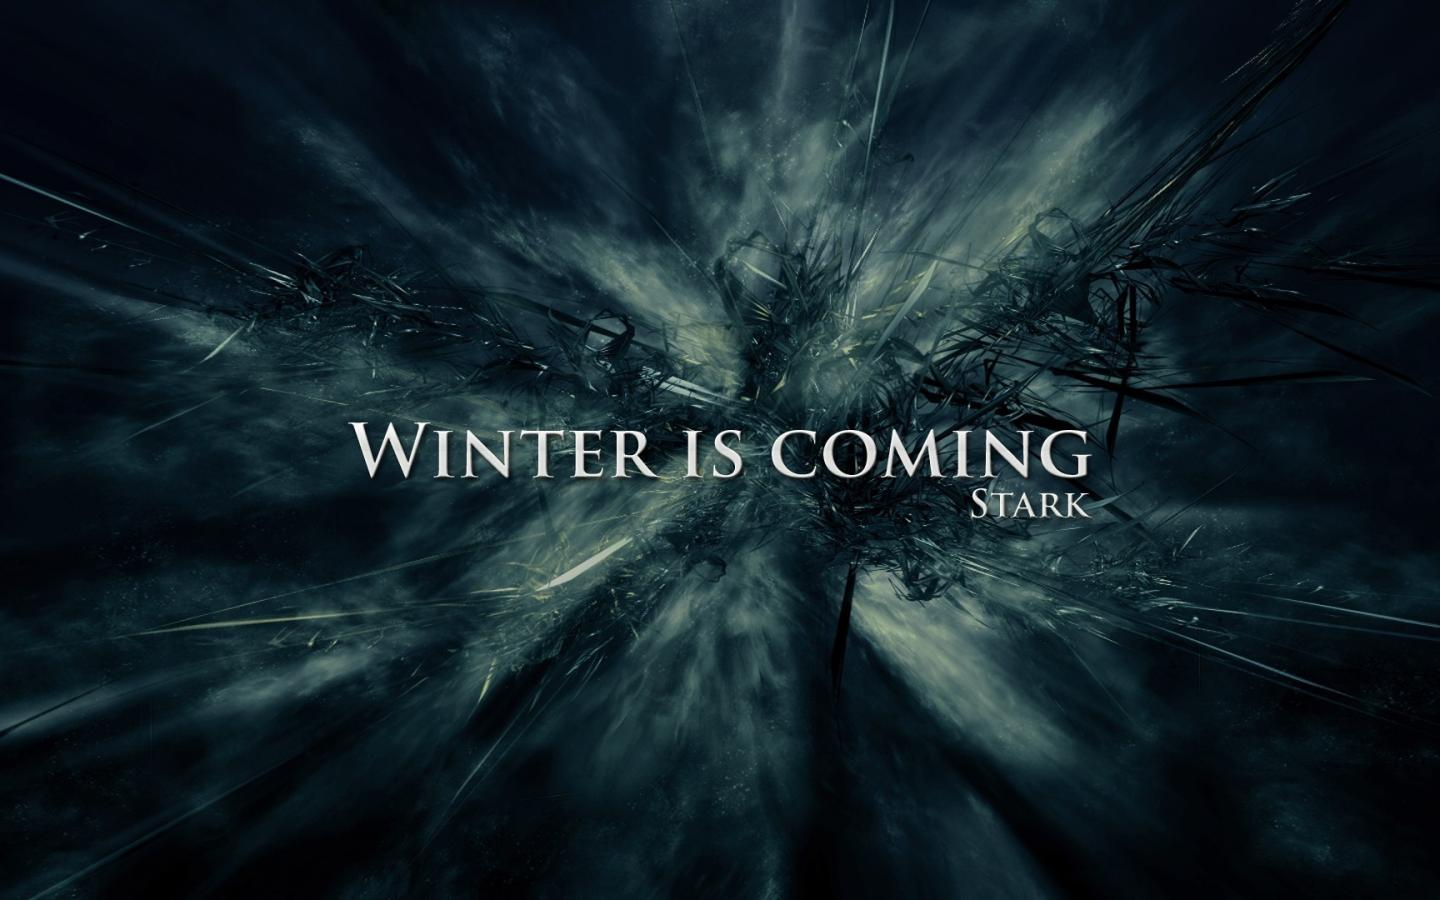 Game of thrones house stark winter is coming wallpaper 82765 1440x900